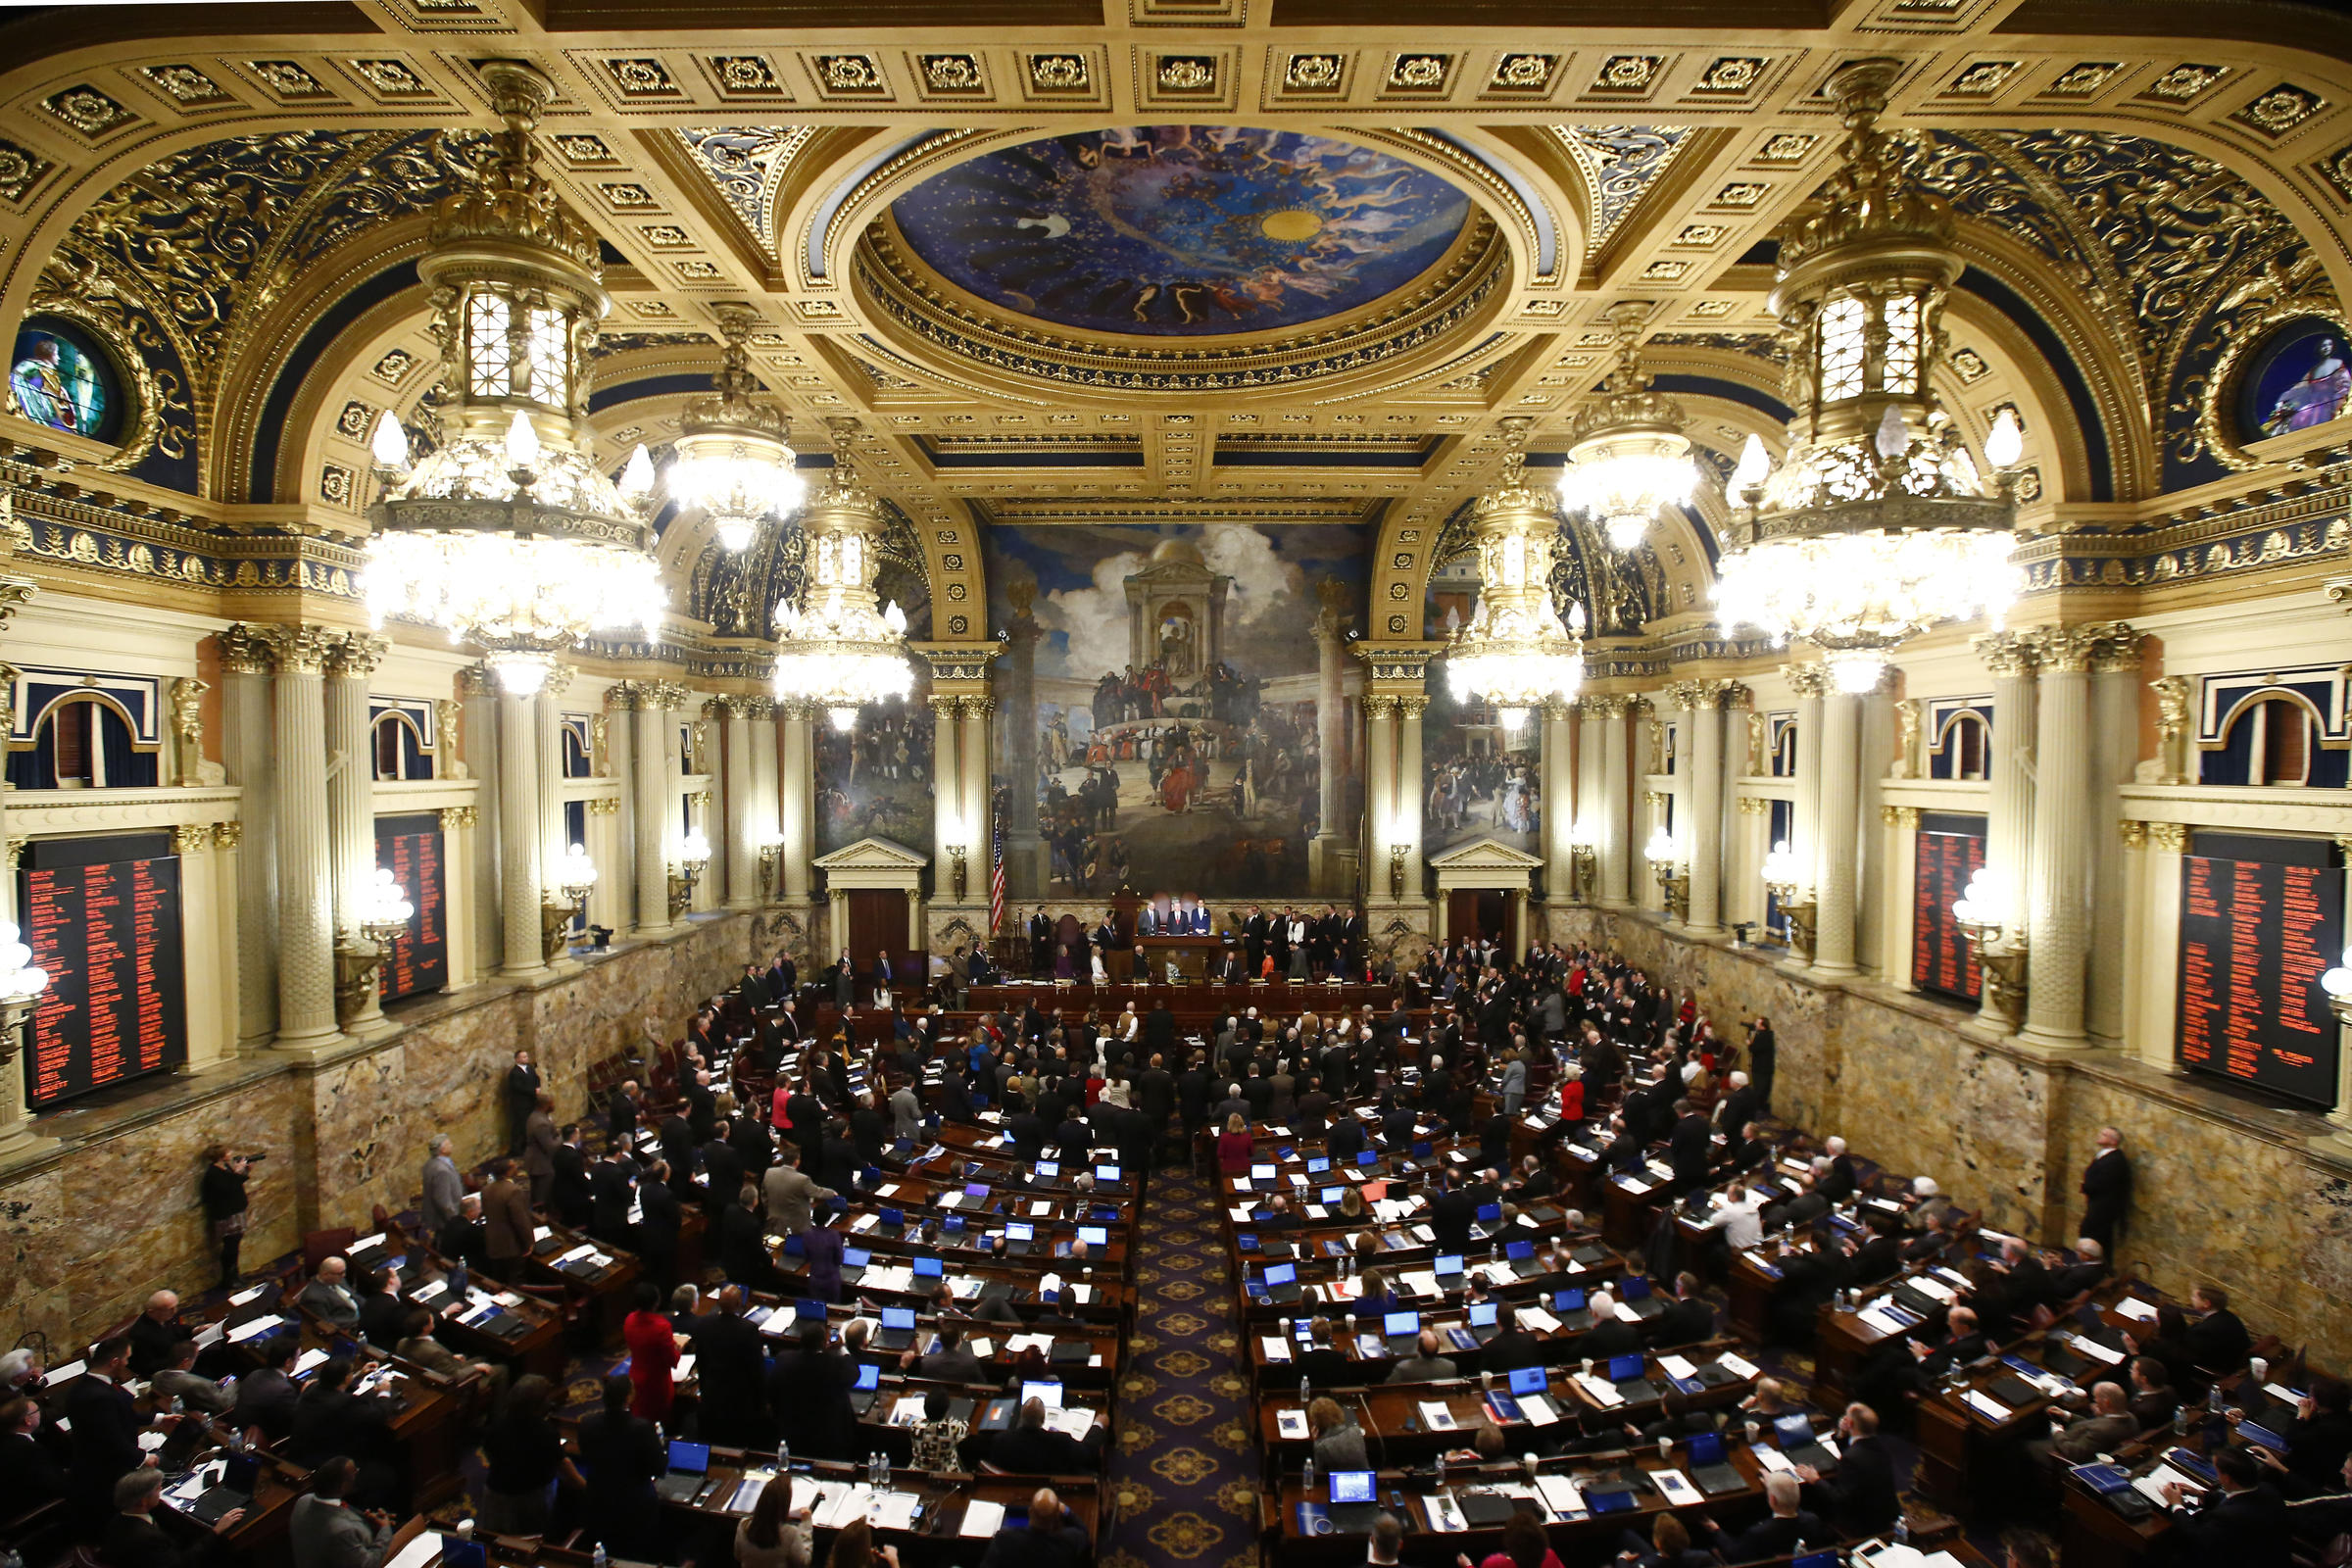 Pennsylvania to Begin Processing Online Poker License Applications in April